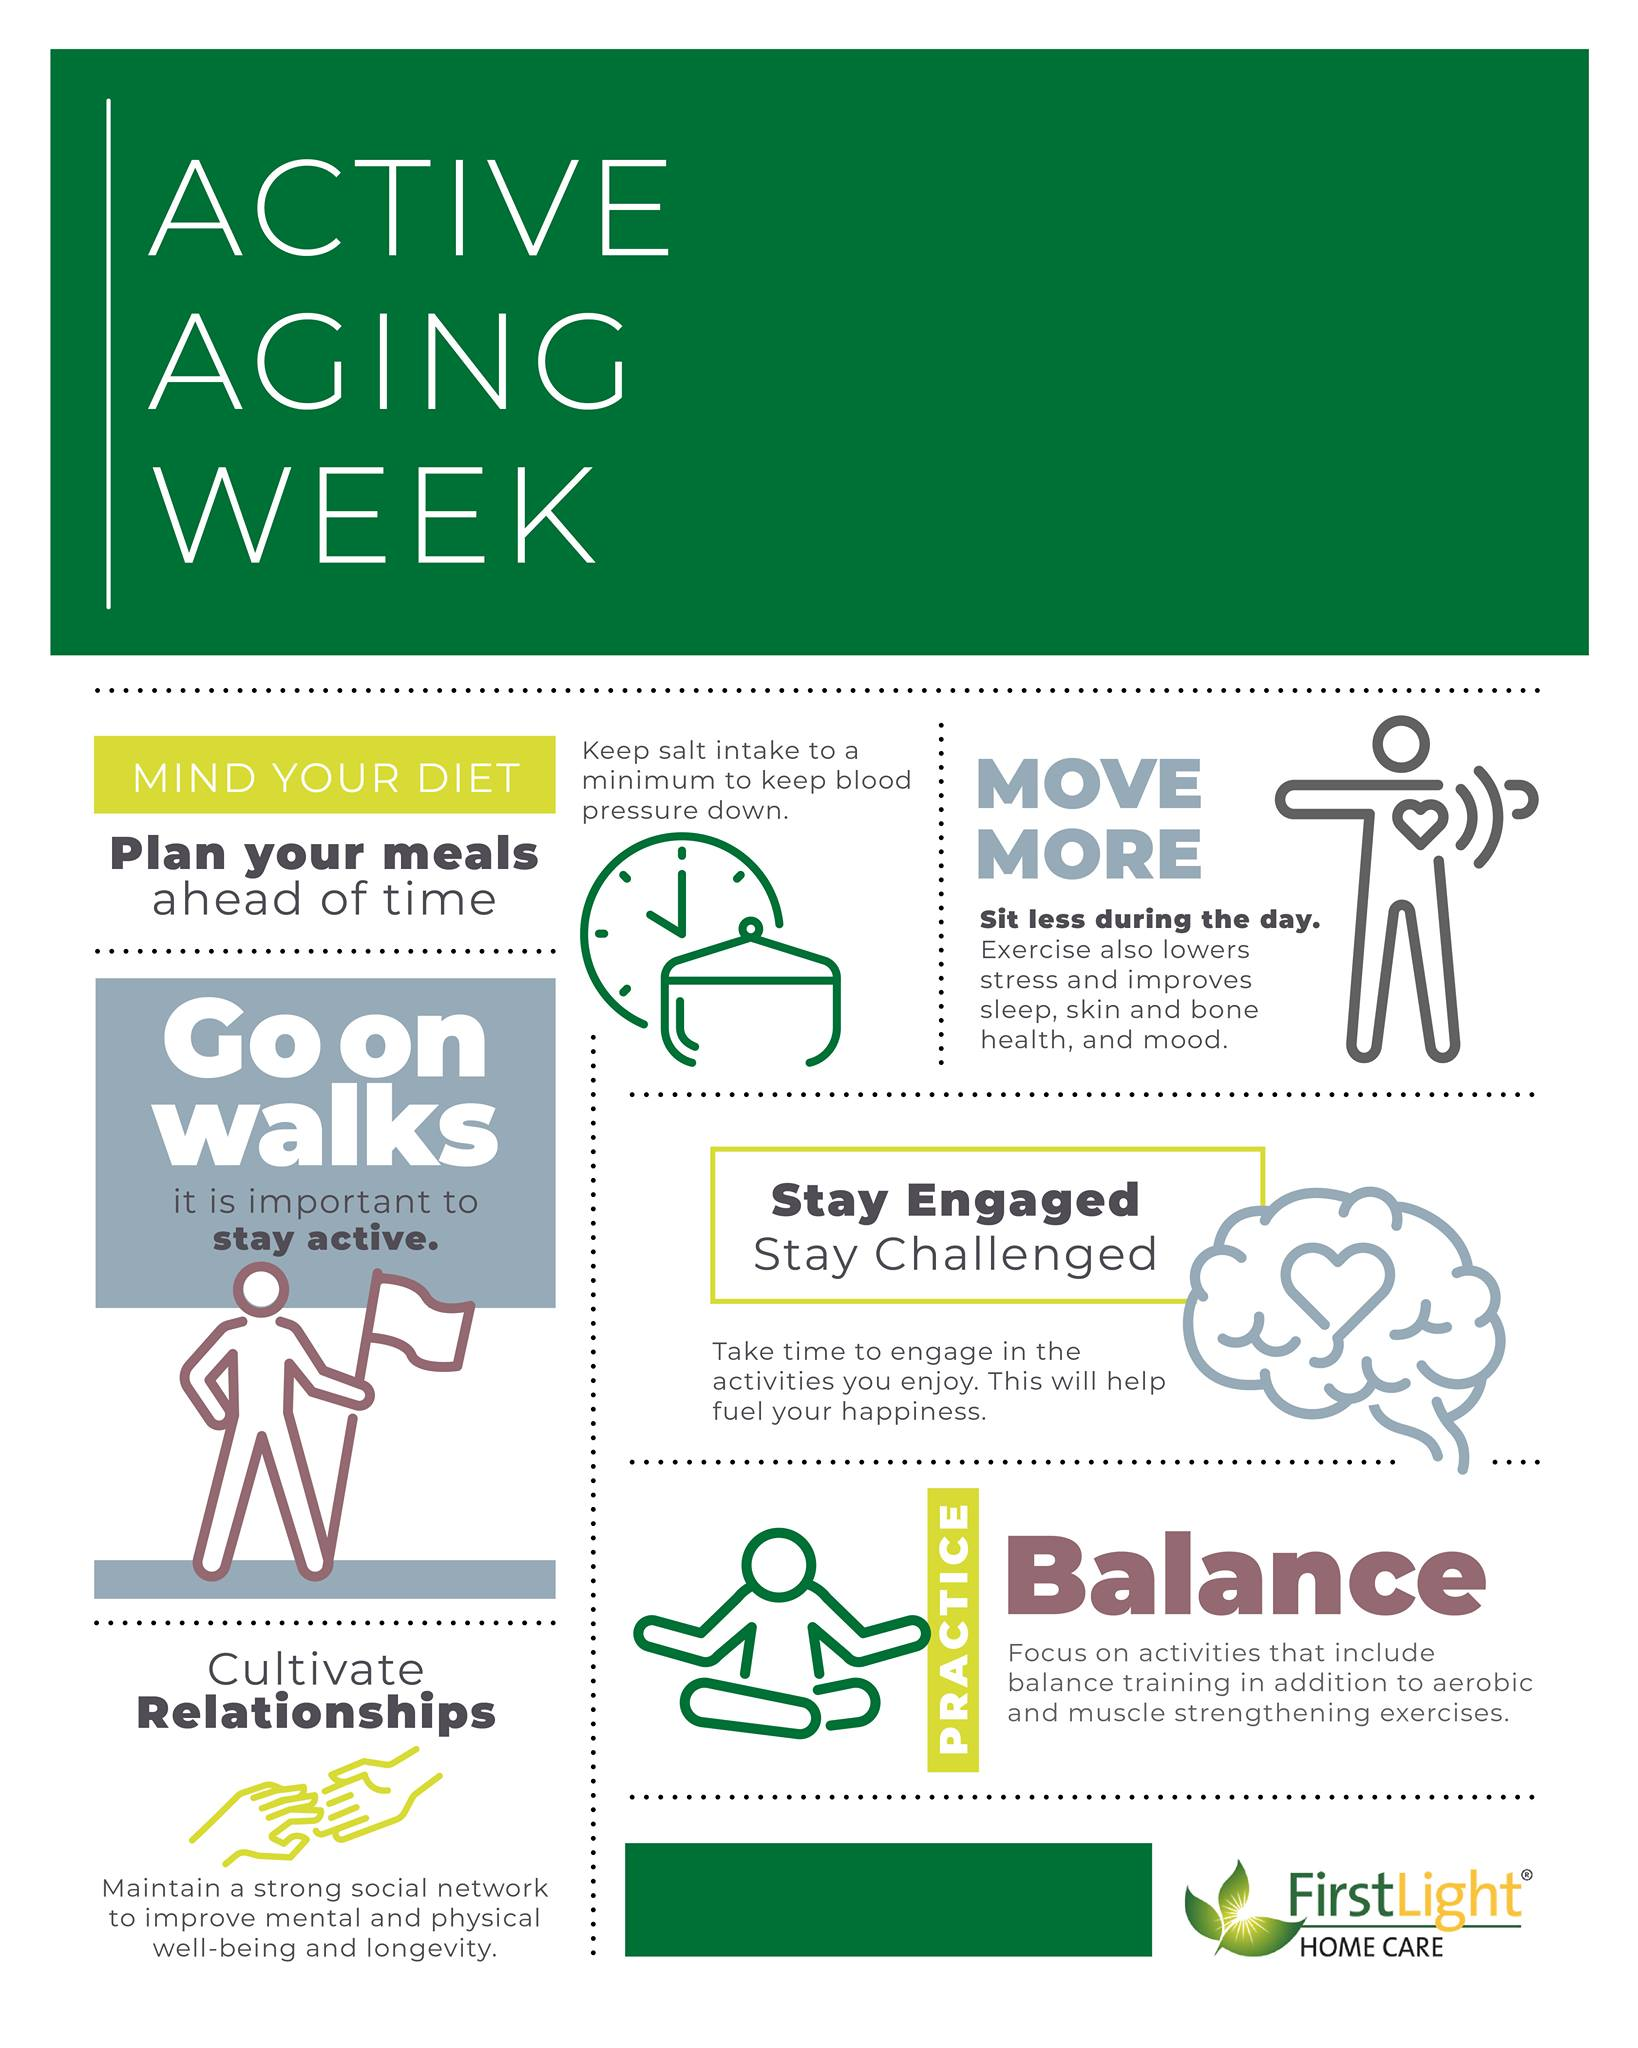 FirstLight Home Care - Celebrating the Positivity of Aging